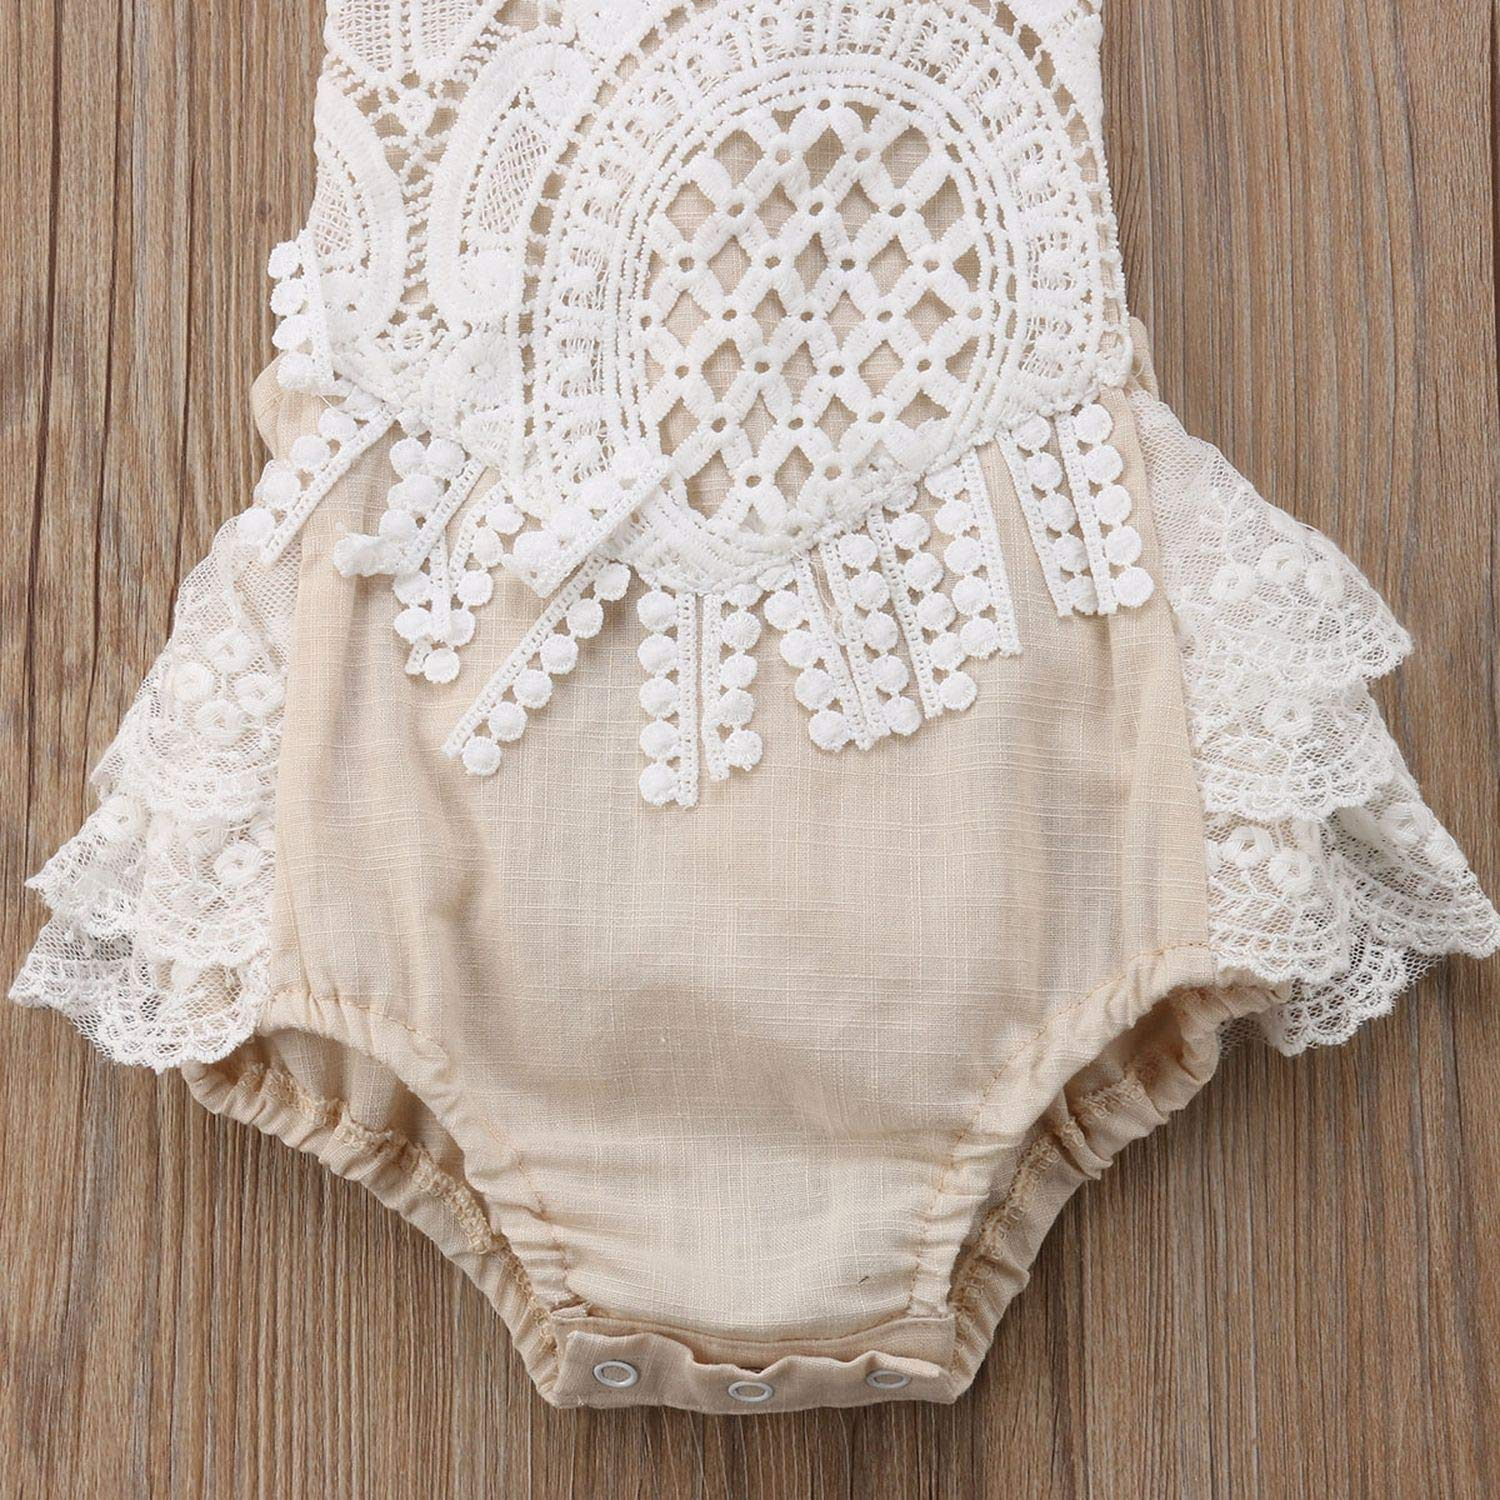 Toddler Baby Girl Clothing Lace Romper Backless Jumpsuit Outfits Clothes Set